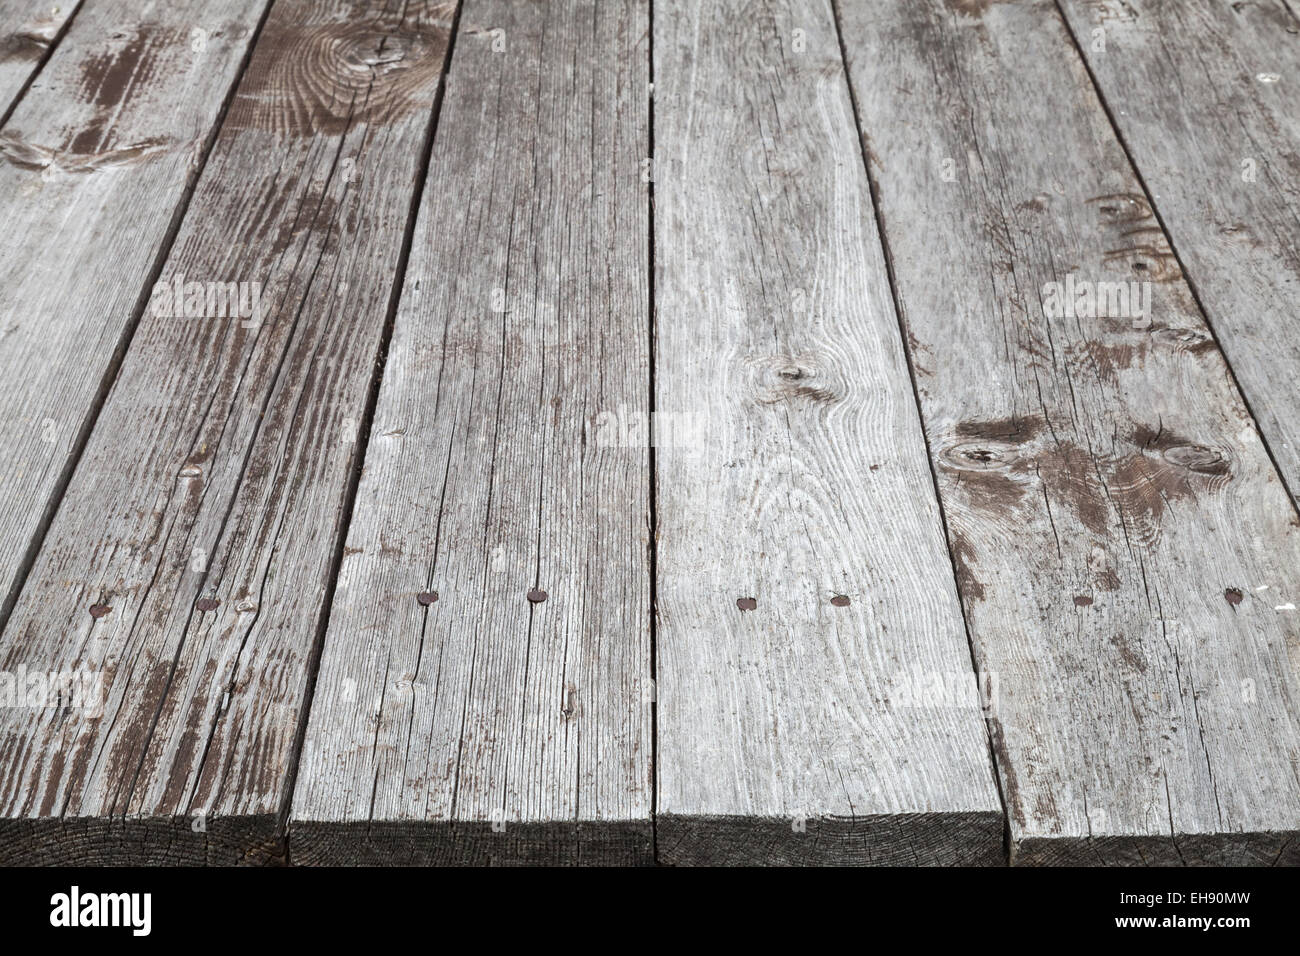 Old gray wooden table, background photo texture with perspective effect - Stock Image